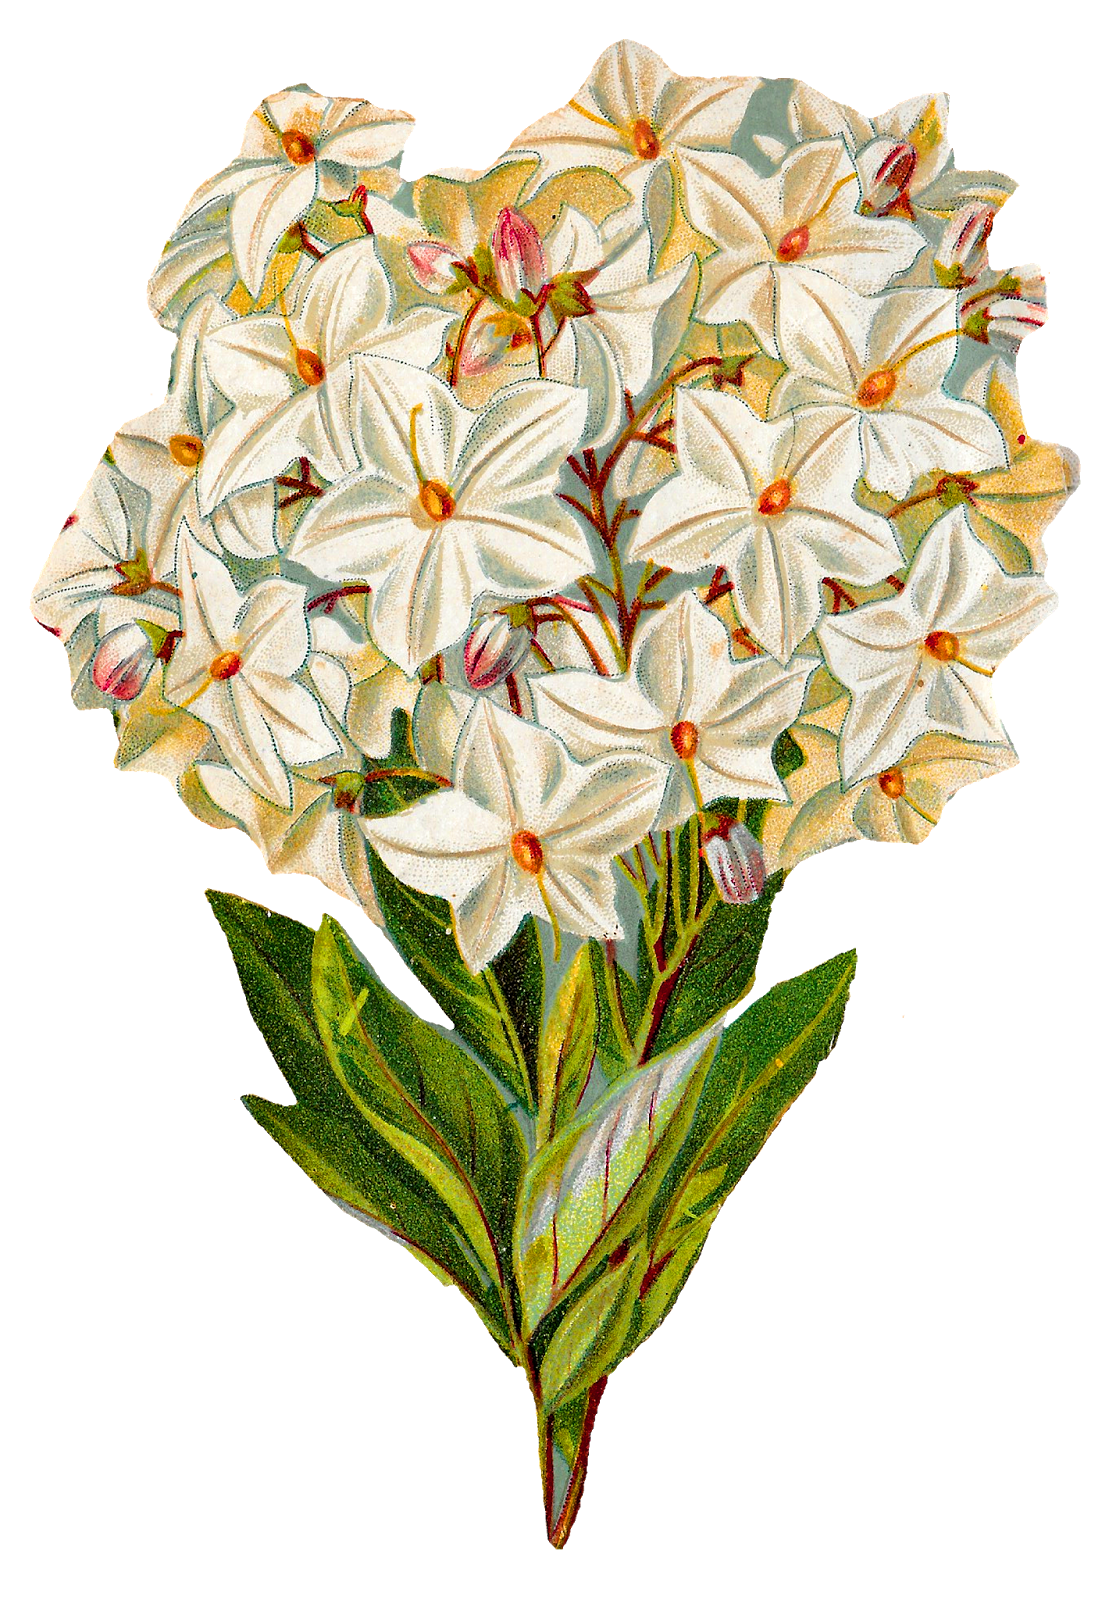 Free flower prints to download royalty free download Antique Images: Free Hydrangea Flower Botanical Artwork Image ... royalty free download